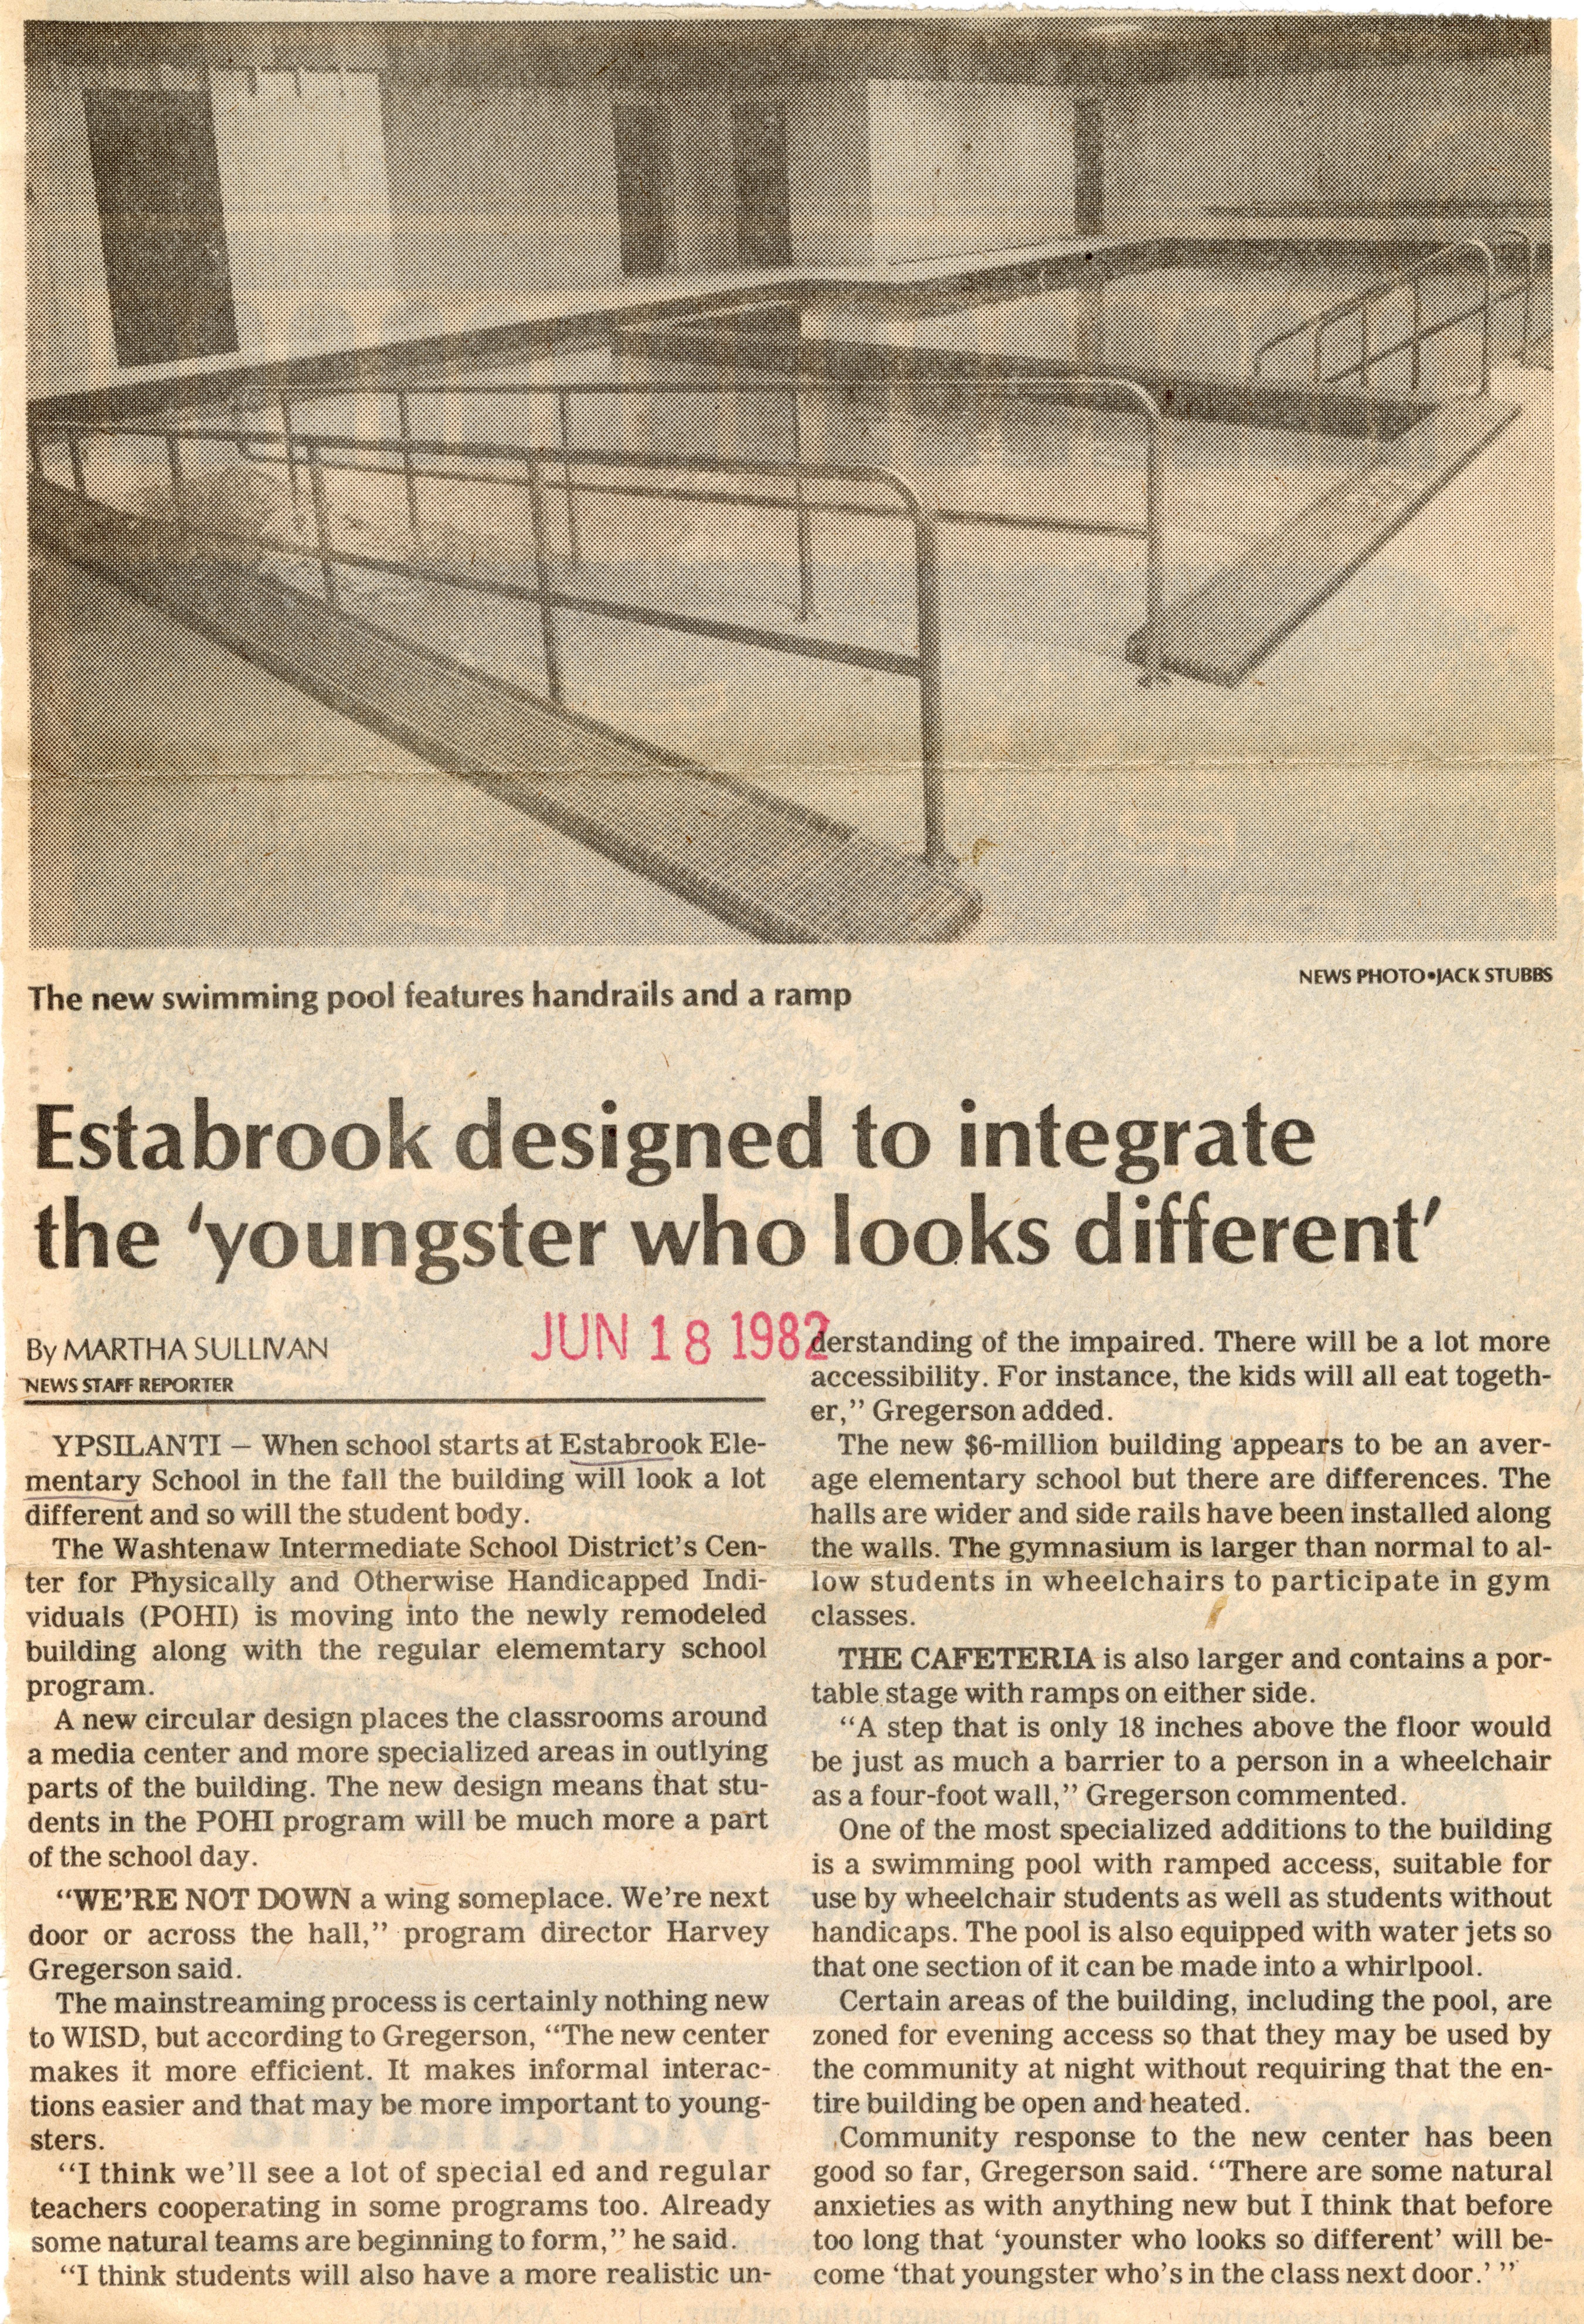 Estabrook designed to integrate the 'youngster who looks different' image